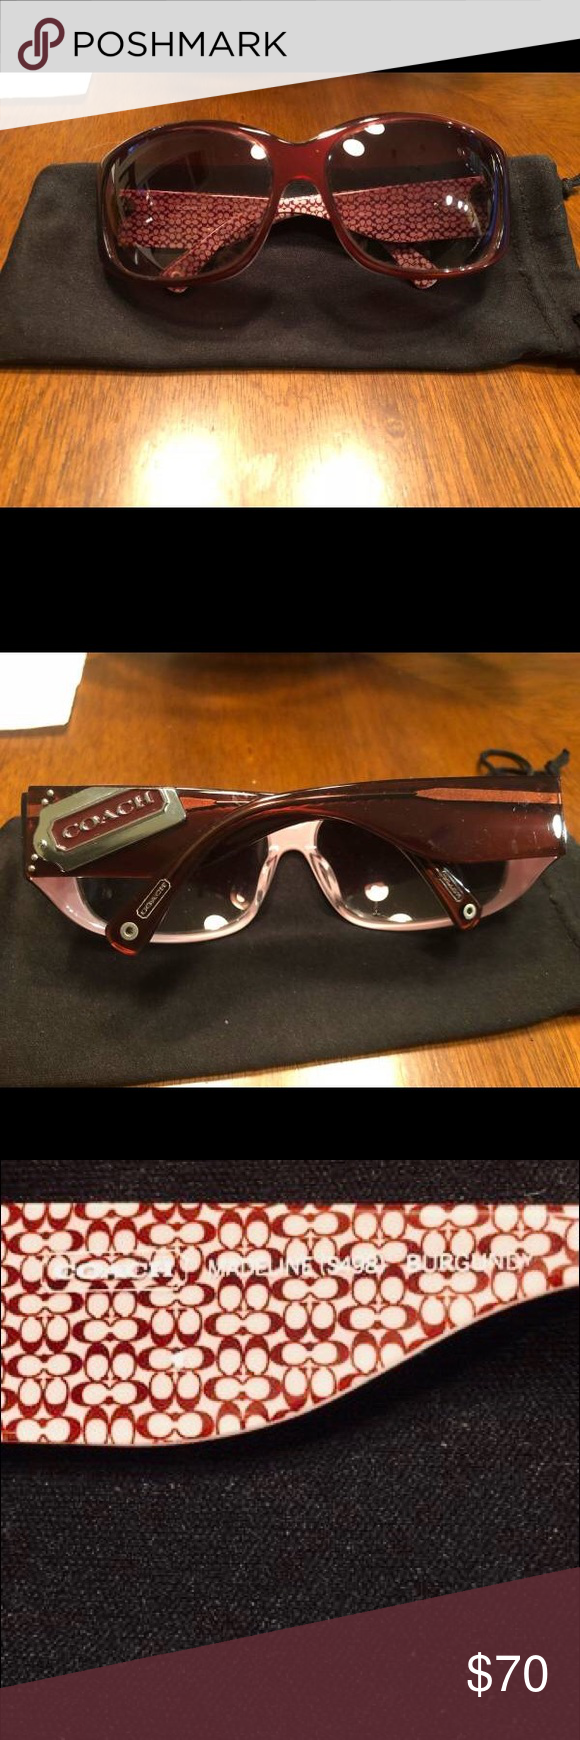 "9a29d044b6 Burgandy COACH Allie Sunglasses Madeline S498 Excellent condition Coach  Burgandy S498 as shown on temple leg. Dimensions are  5-1 2"" wide x 2"" H at  lenses ..."